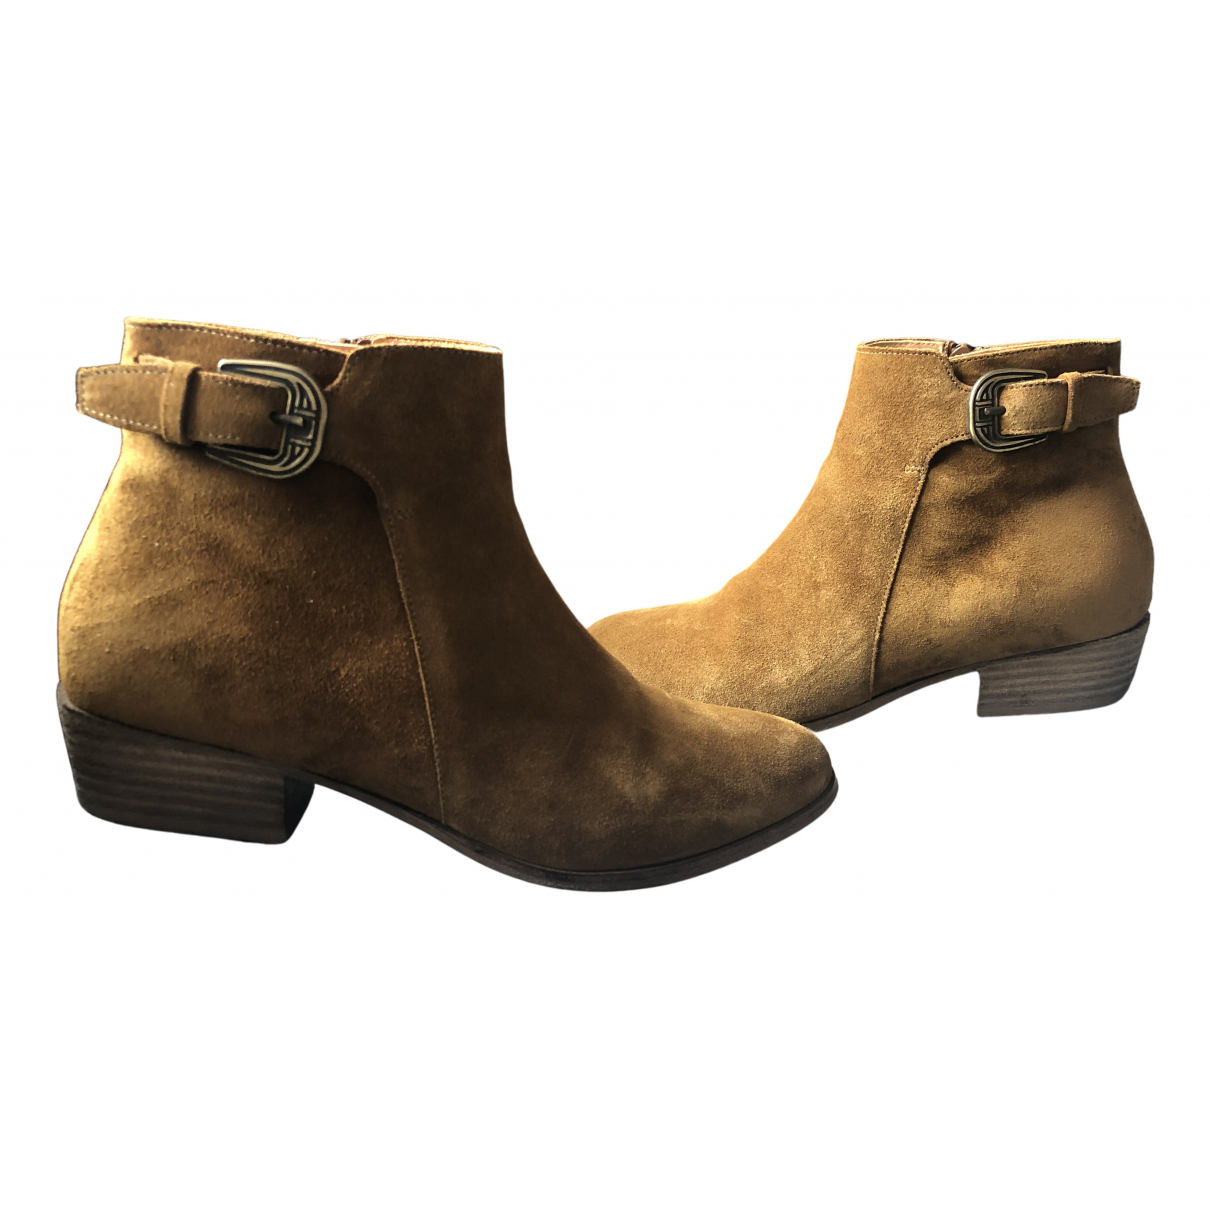 Ba&sh N Brown Suede Ankle boots for Women 37 EU